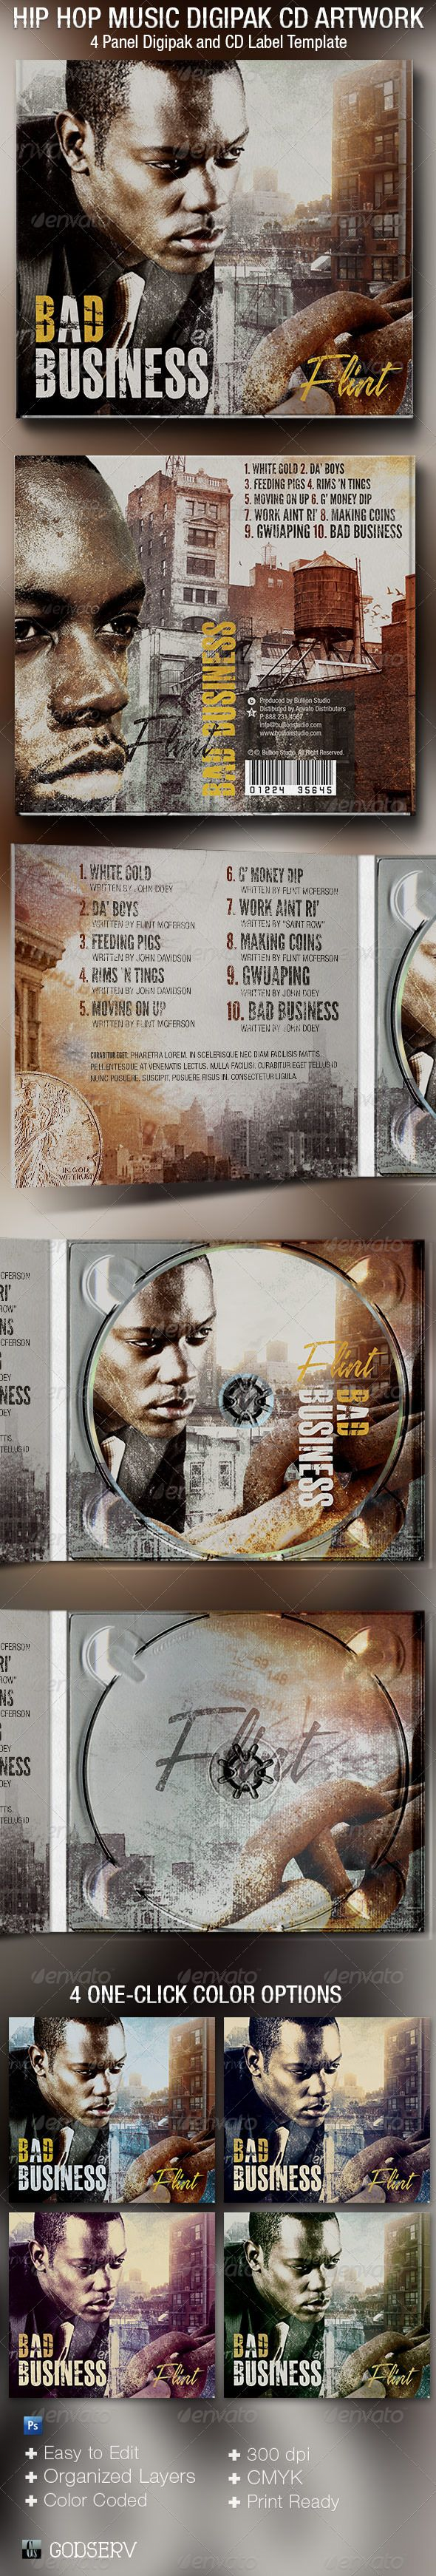 The Hip Hop 4 Panel Digipak CD Artwork Template is a digipak customized for the hip hop music industry, but can be used for any music or poetry recording artists that needs a urban rustic artwork. It can be used for albums, audio books, dj's mixes, iTunes sales, demos, and lots more. You can change colors easily by editing the included color options. $7.00